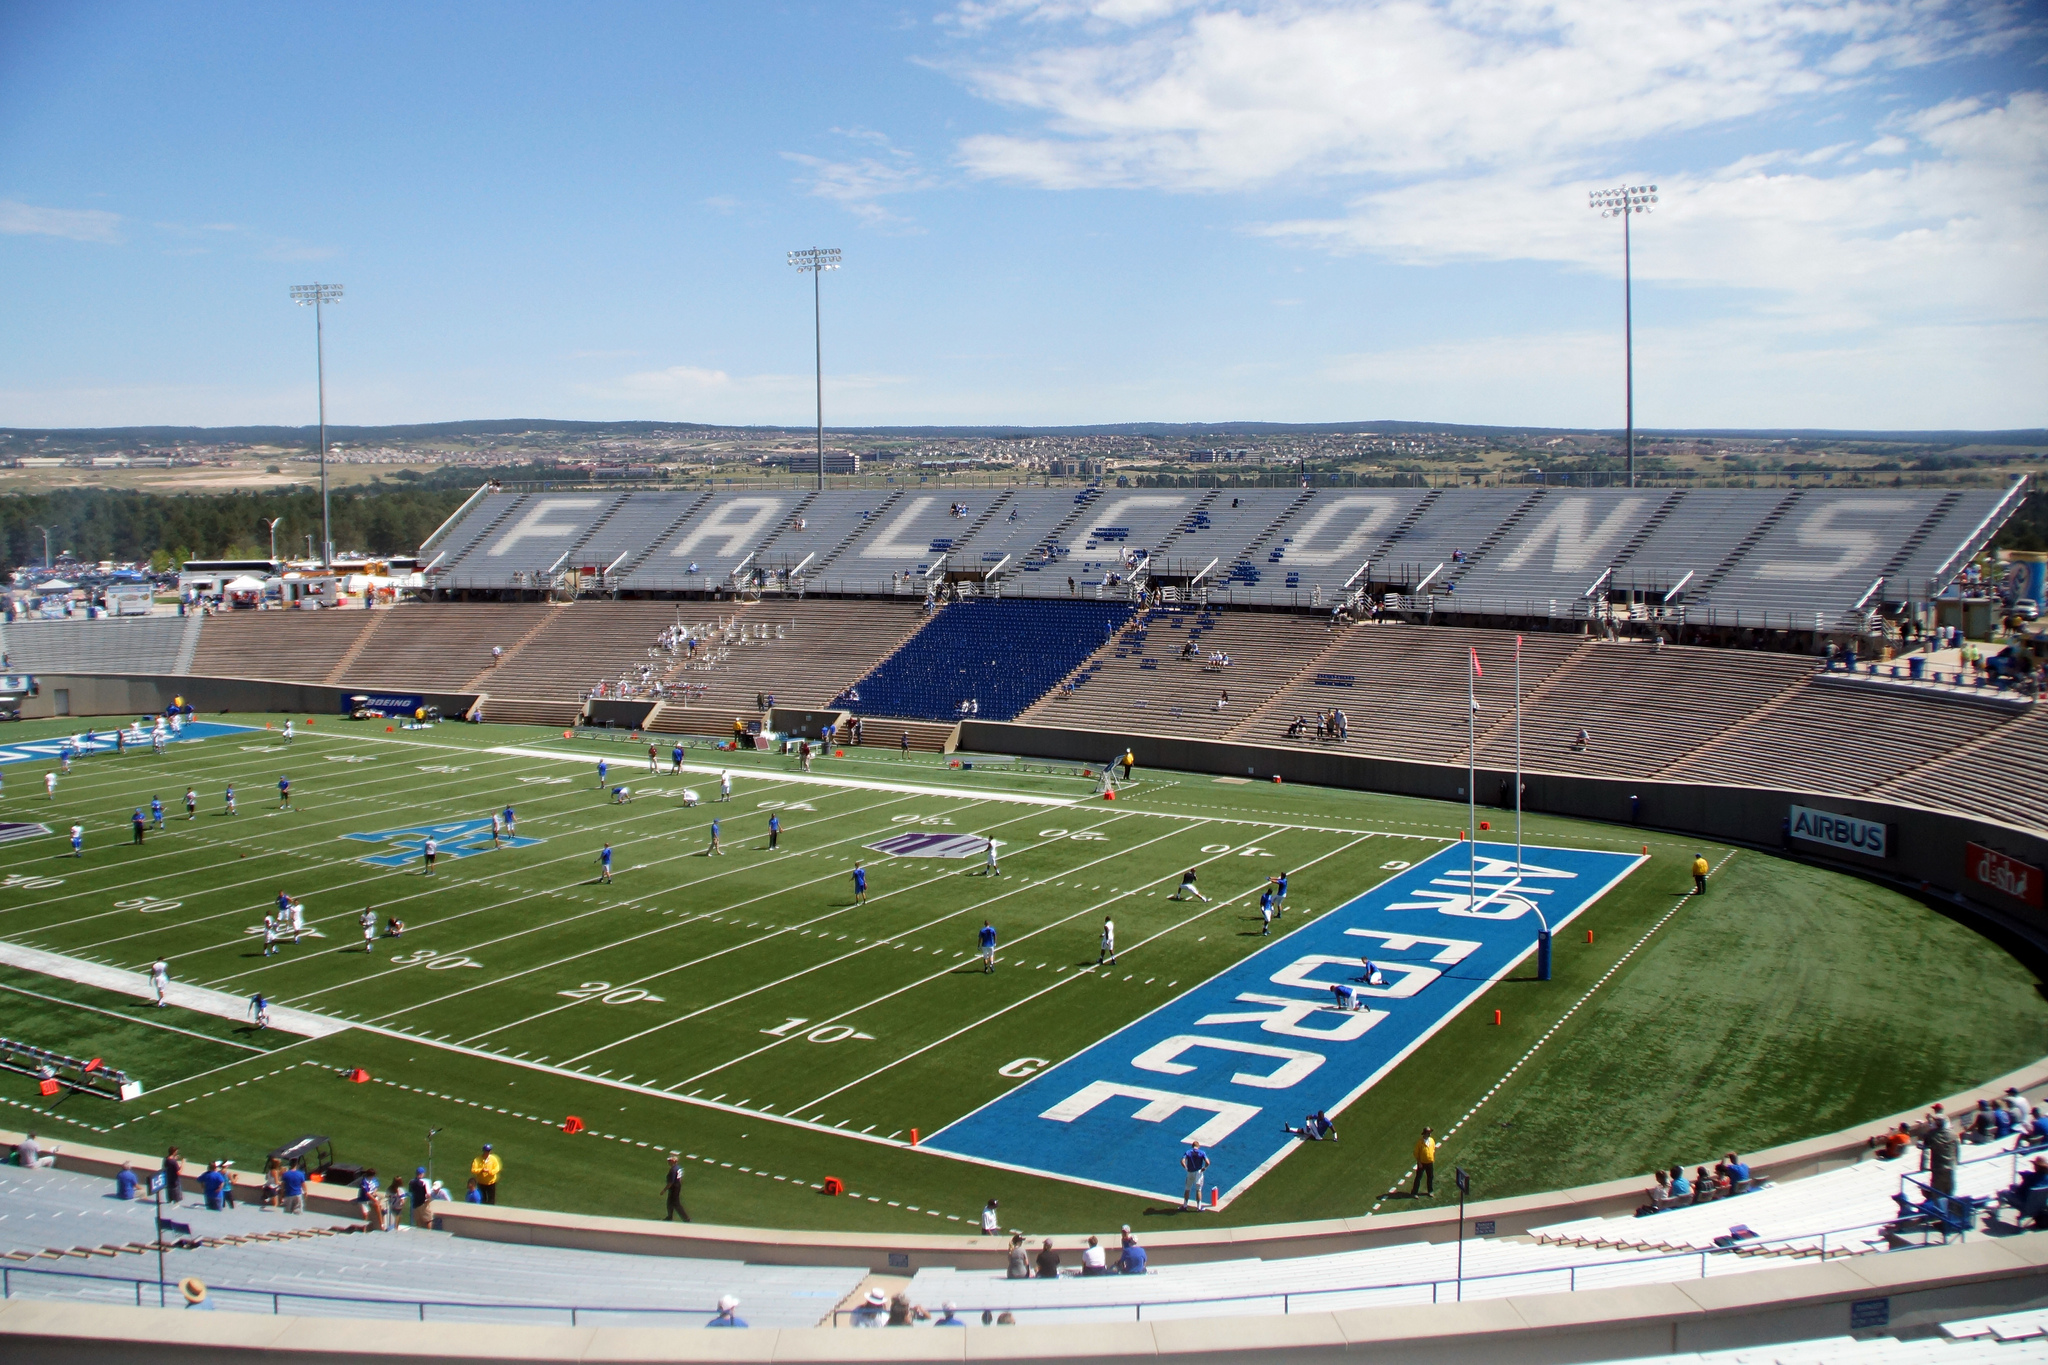 Falcon Stadium, home of the Air Force Falcons